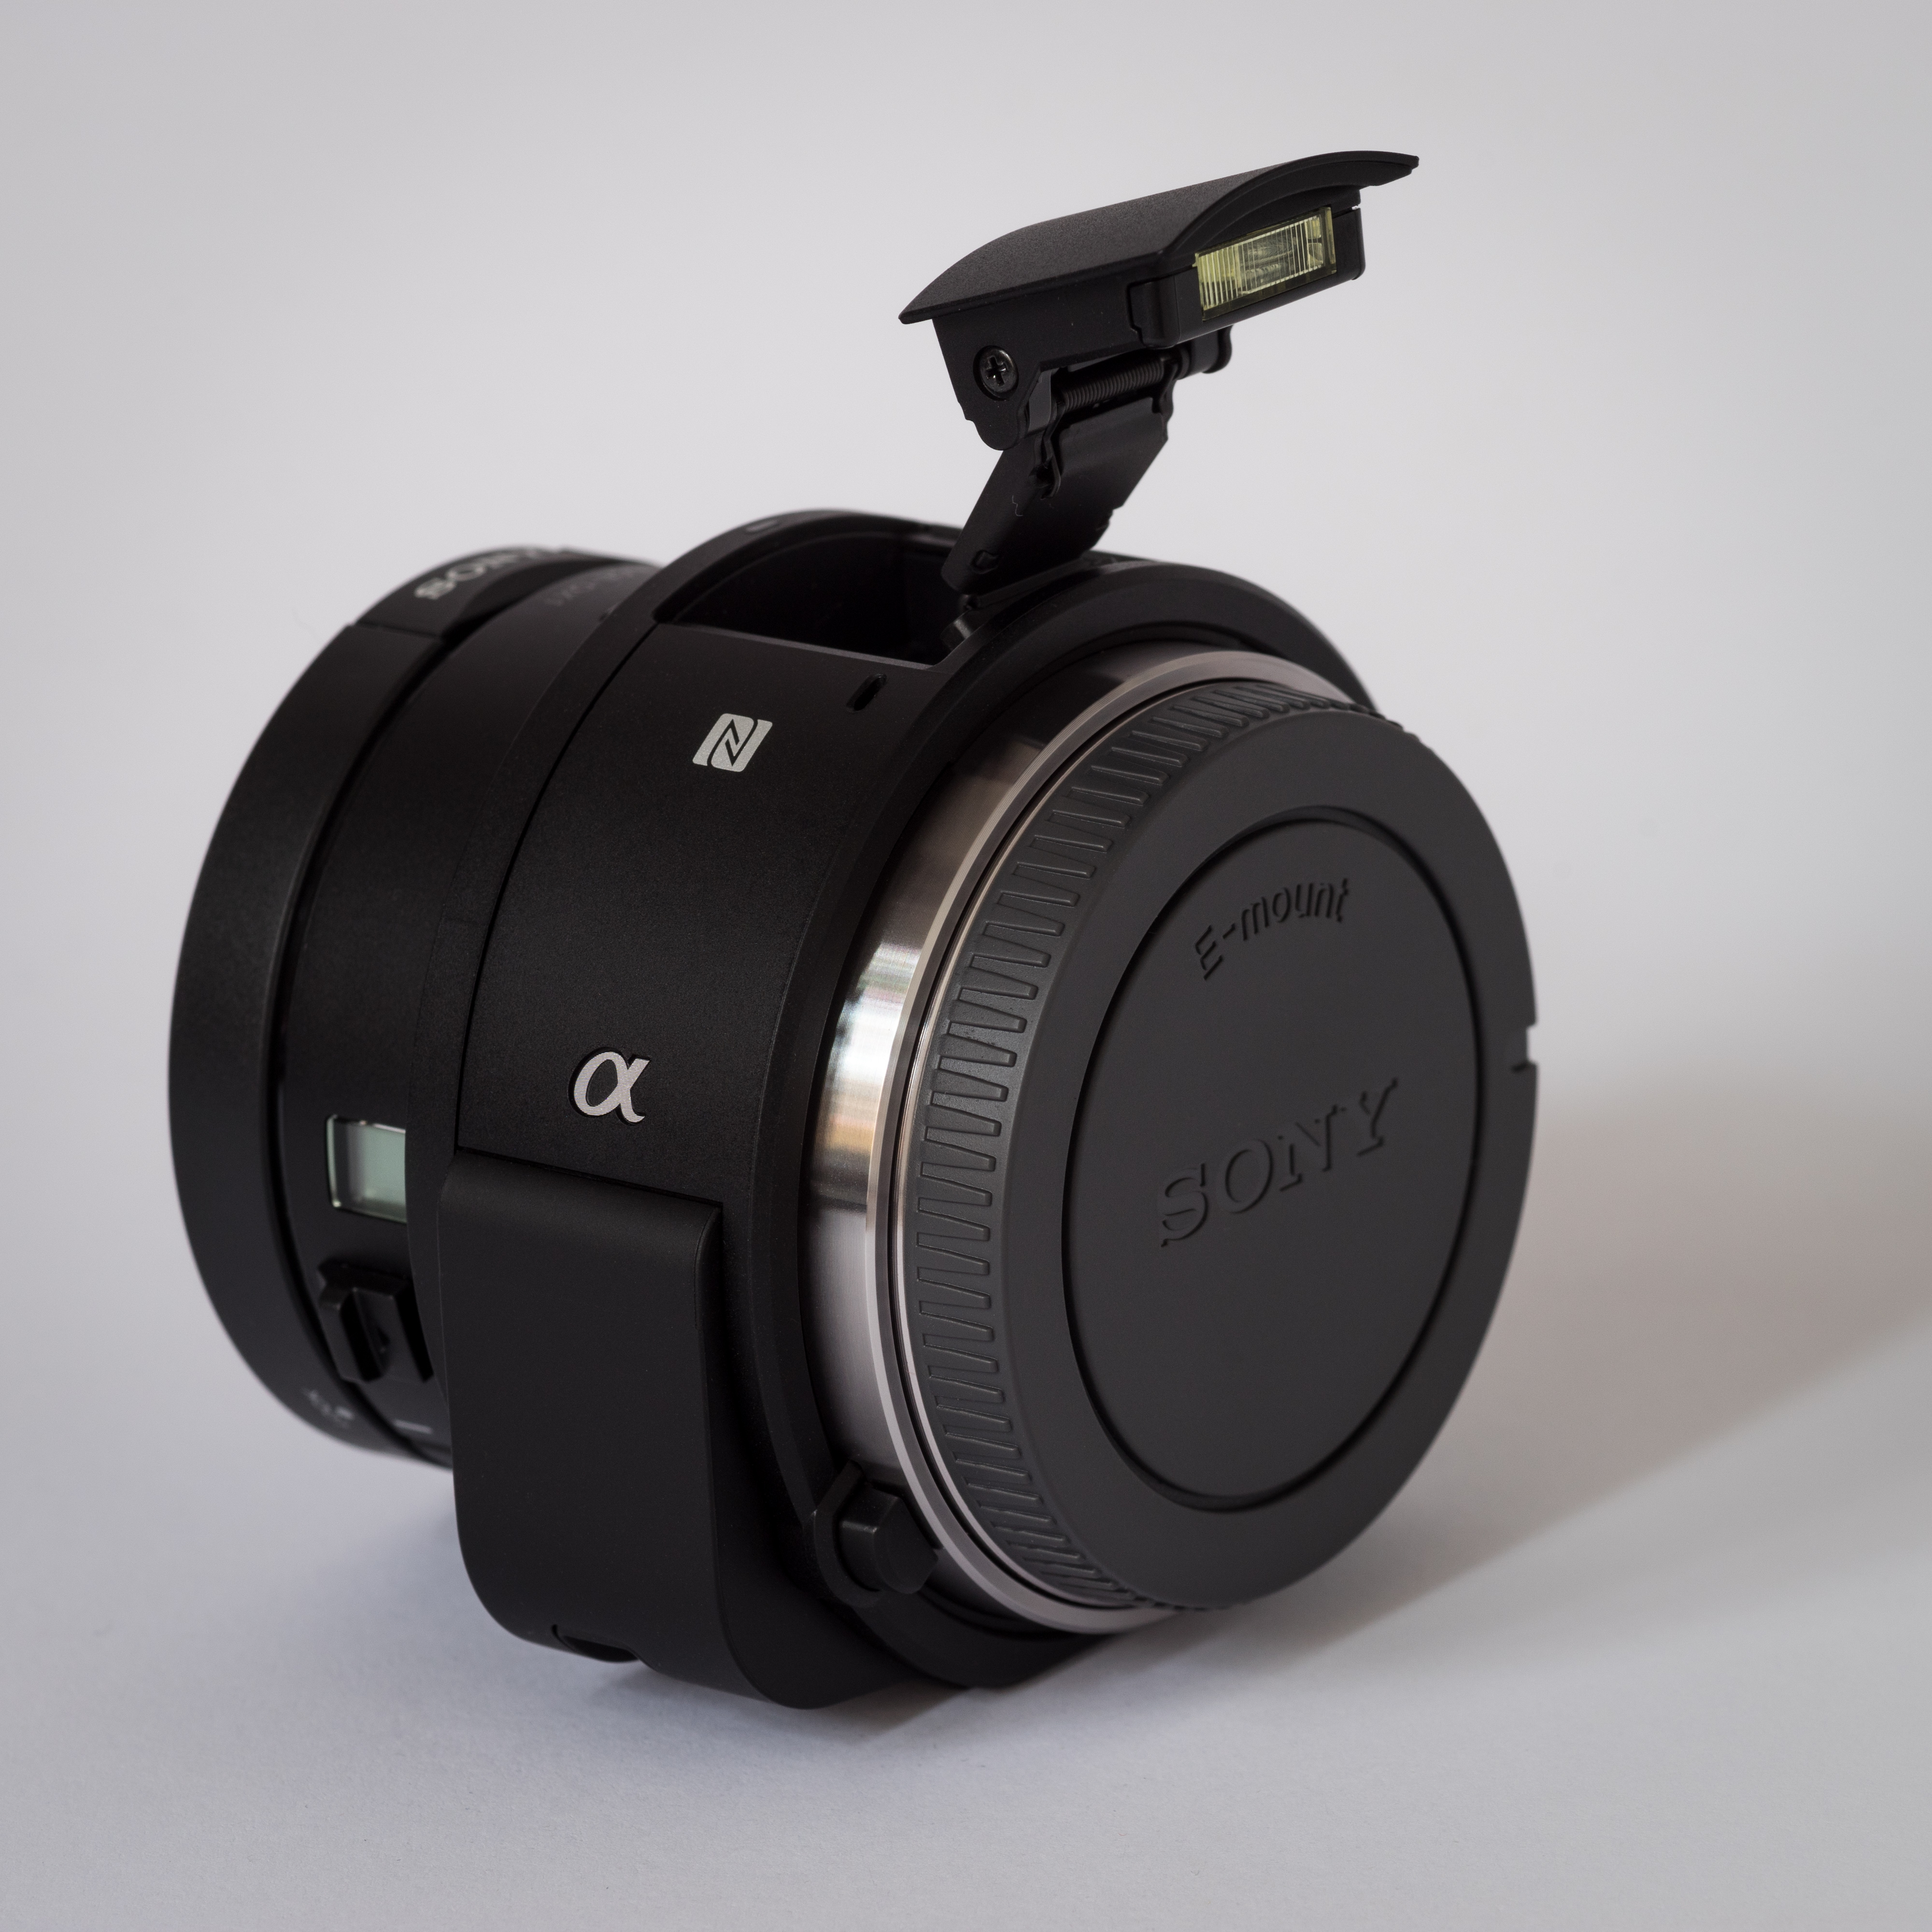 Sony Alpha ILCE QX1 APS C frame camera with body cap flash extended